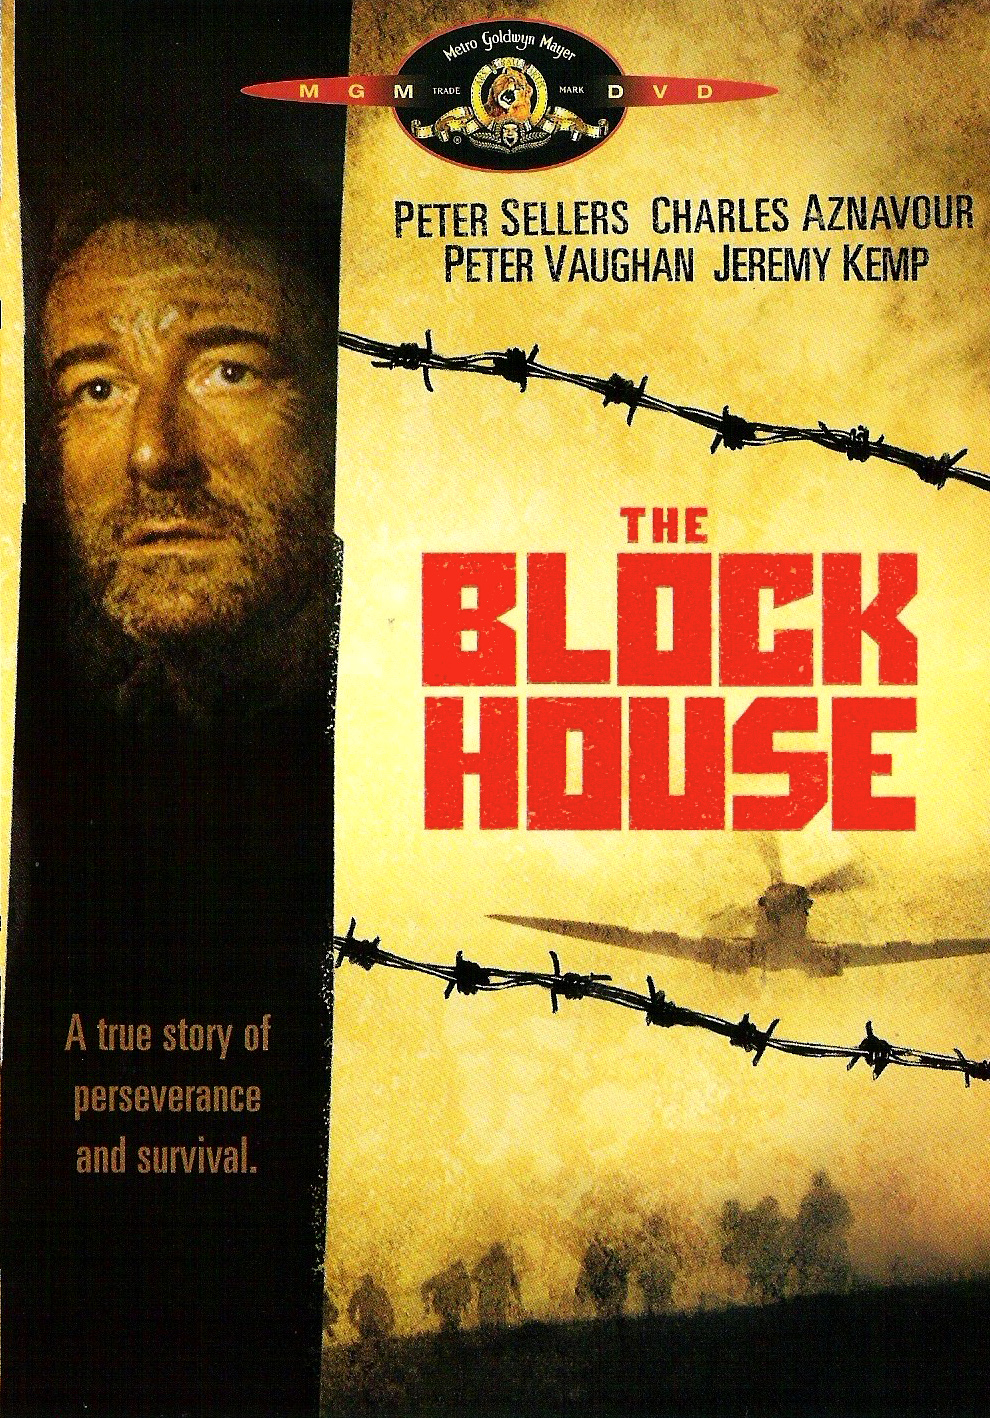 The Blockhouse Starring Peter Sellers DVD Cover